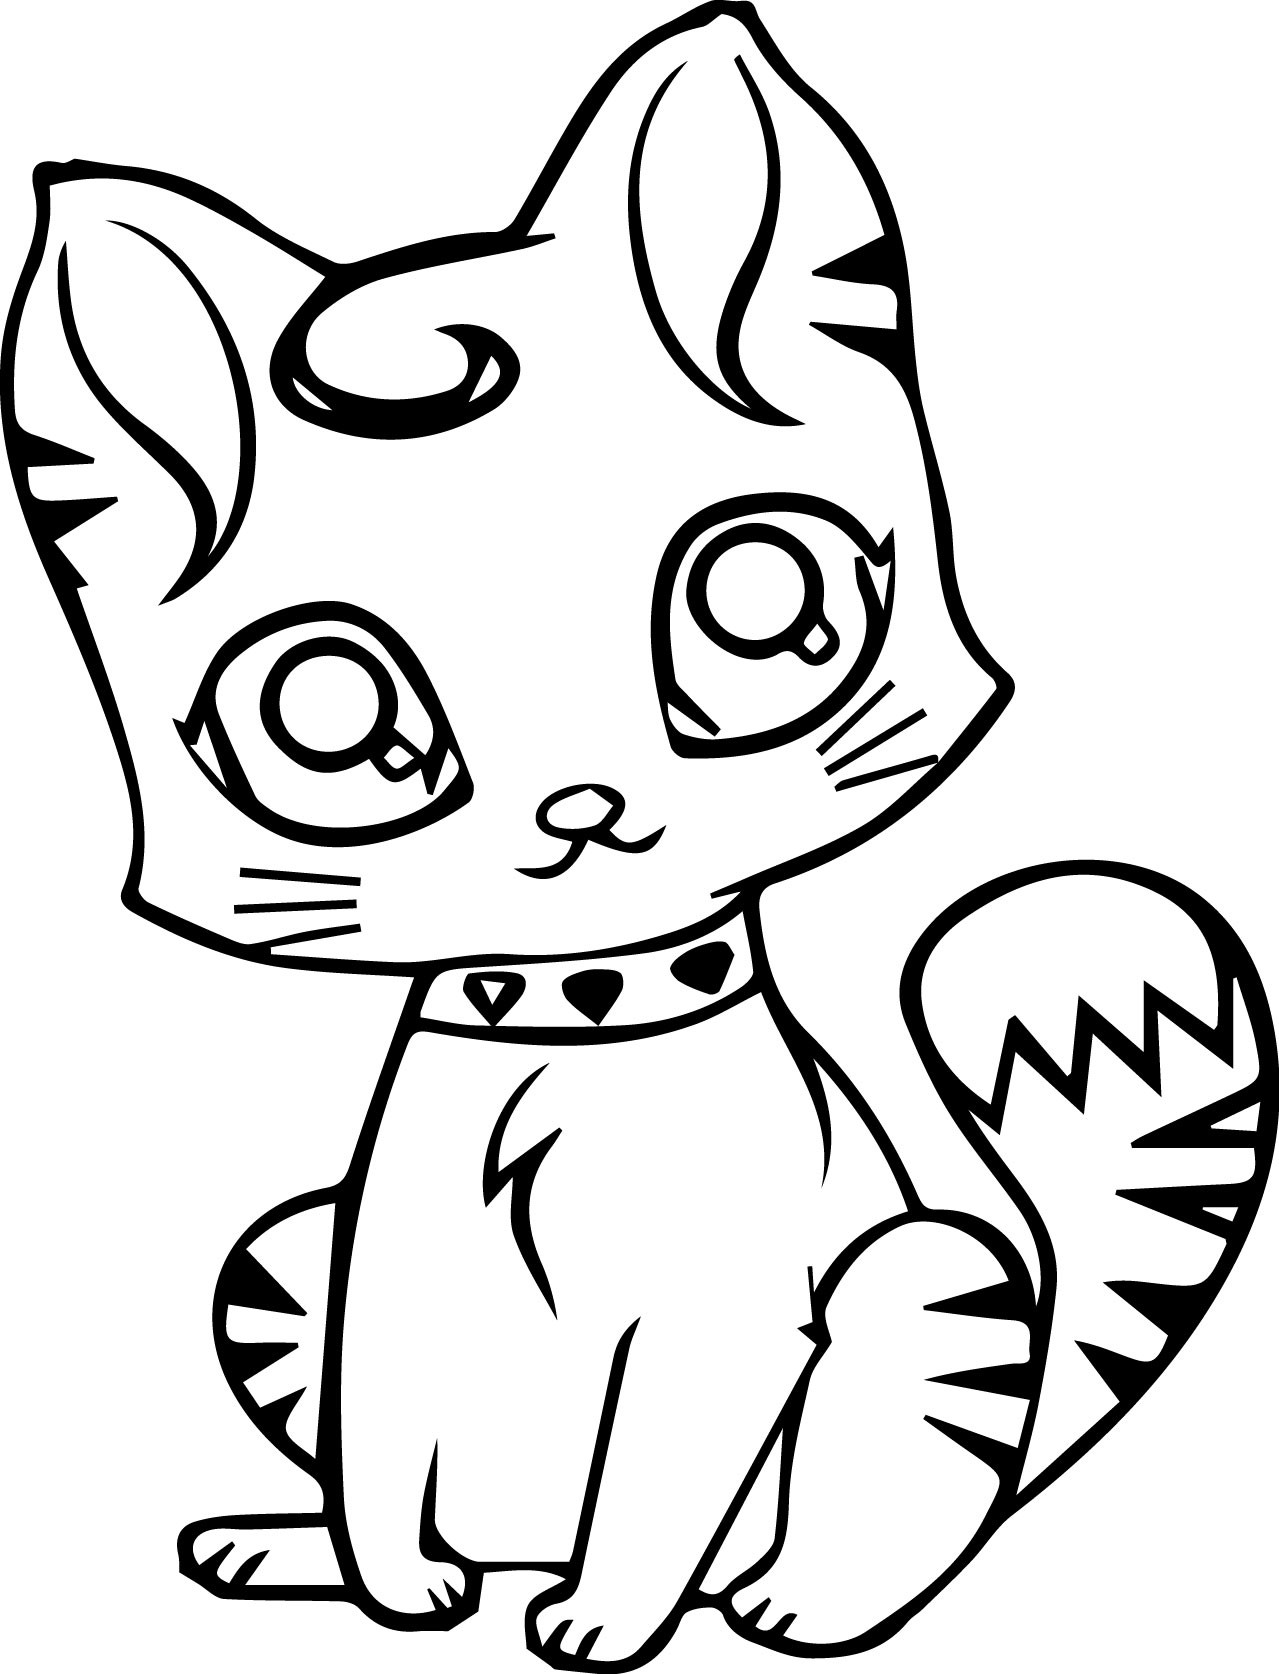 cat coloring book cute cat animal coloring pages for kids to print color cat book coloring